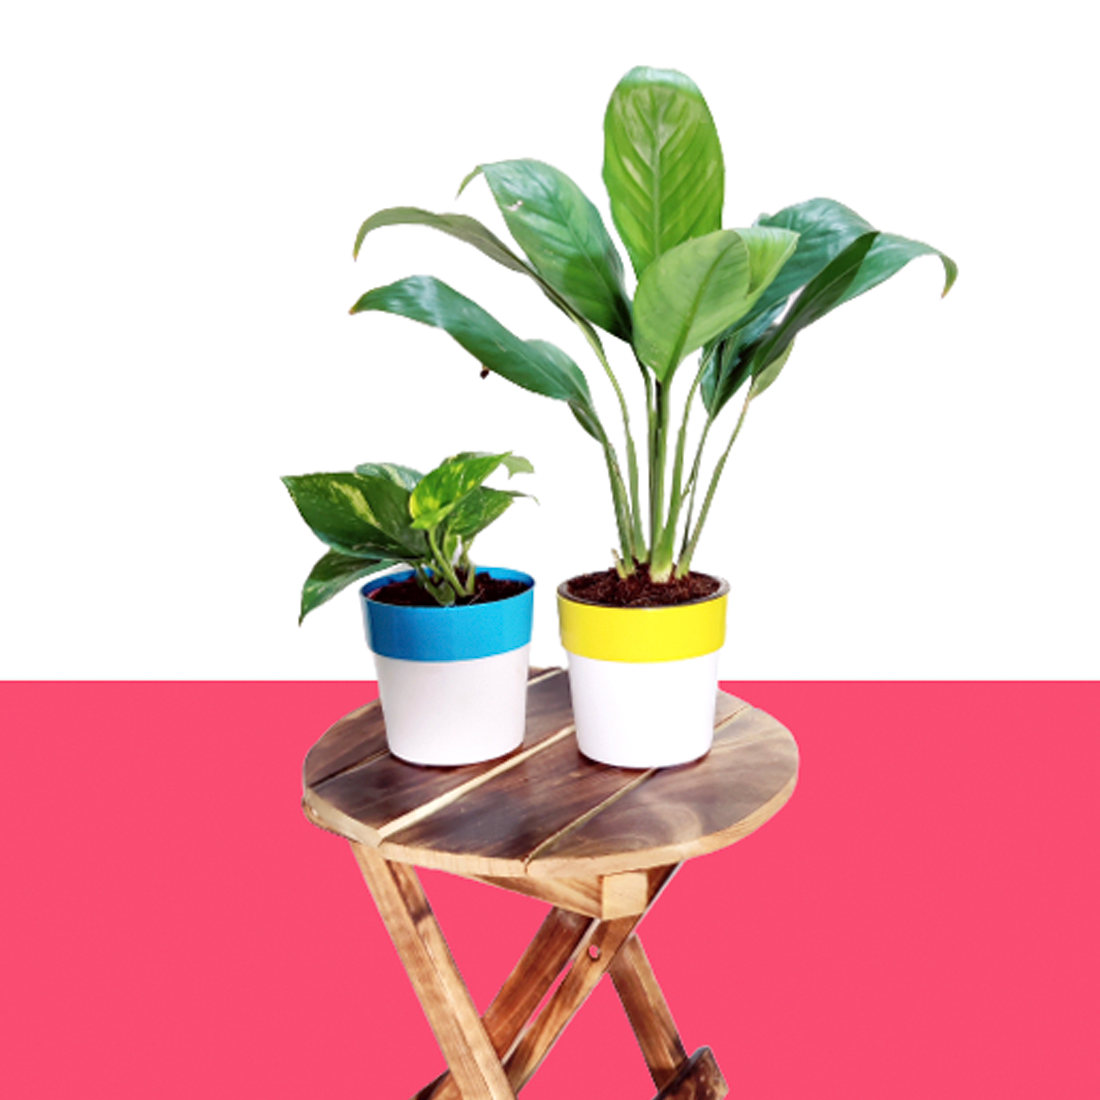 Air Purifier Plant Combo Pack - Green Money Plant & Peace Lily In Dual Color Pot